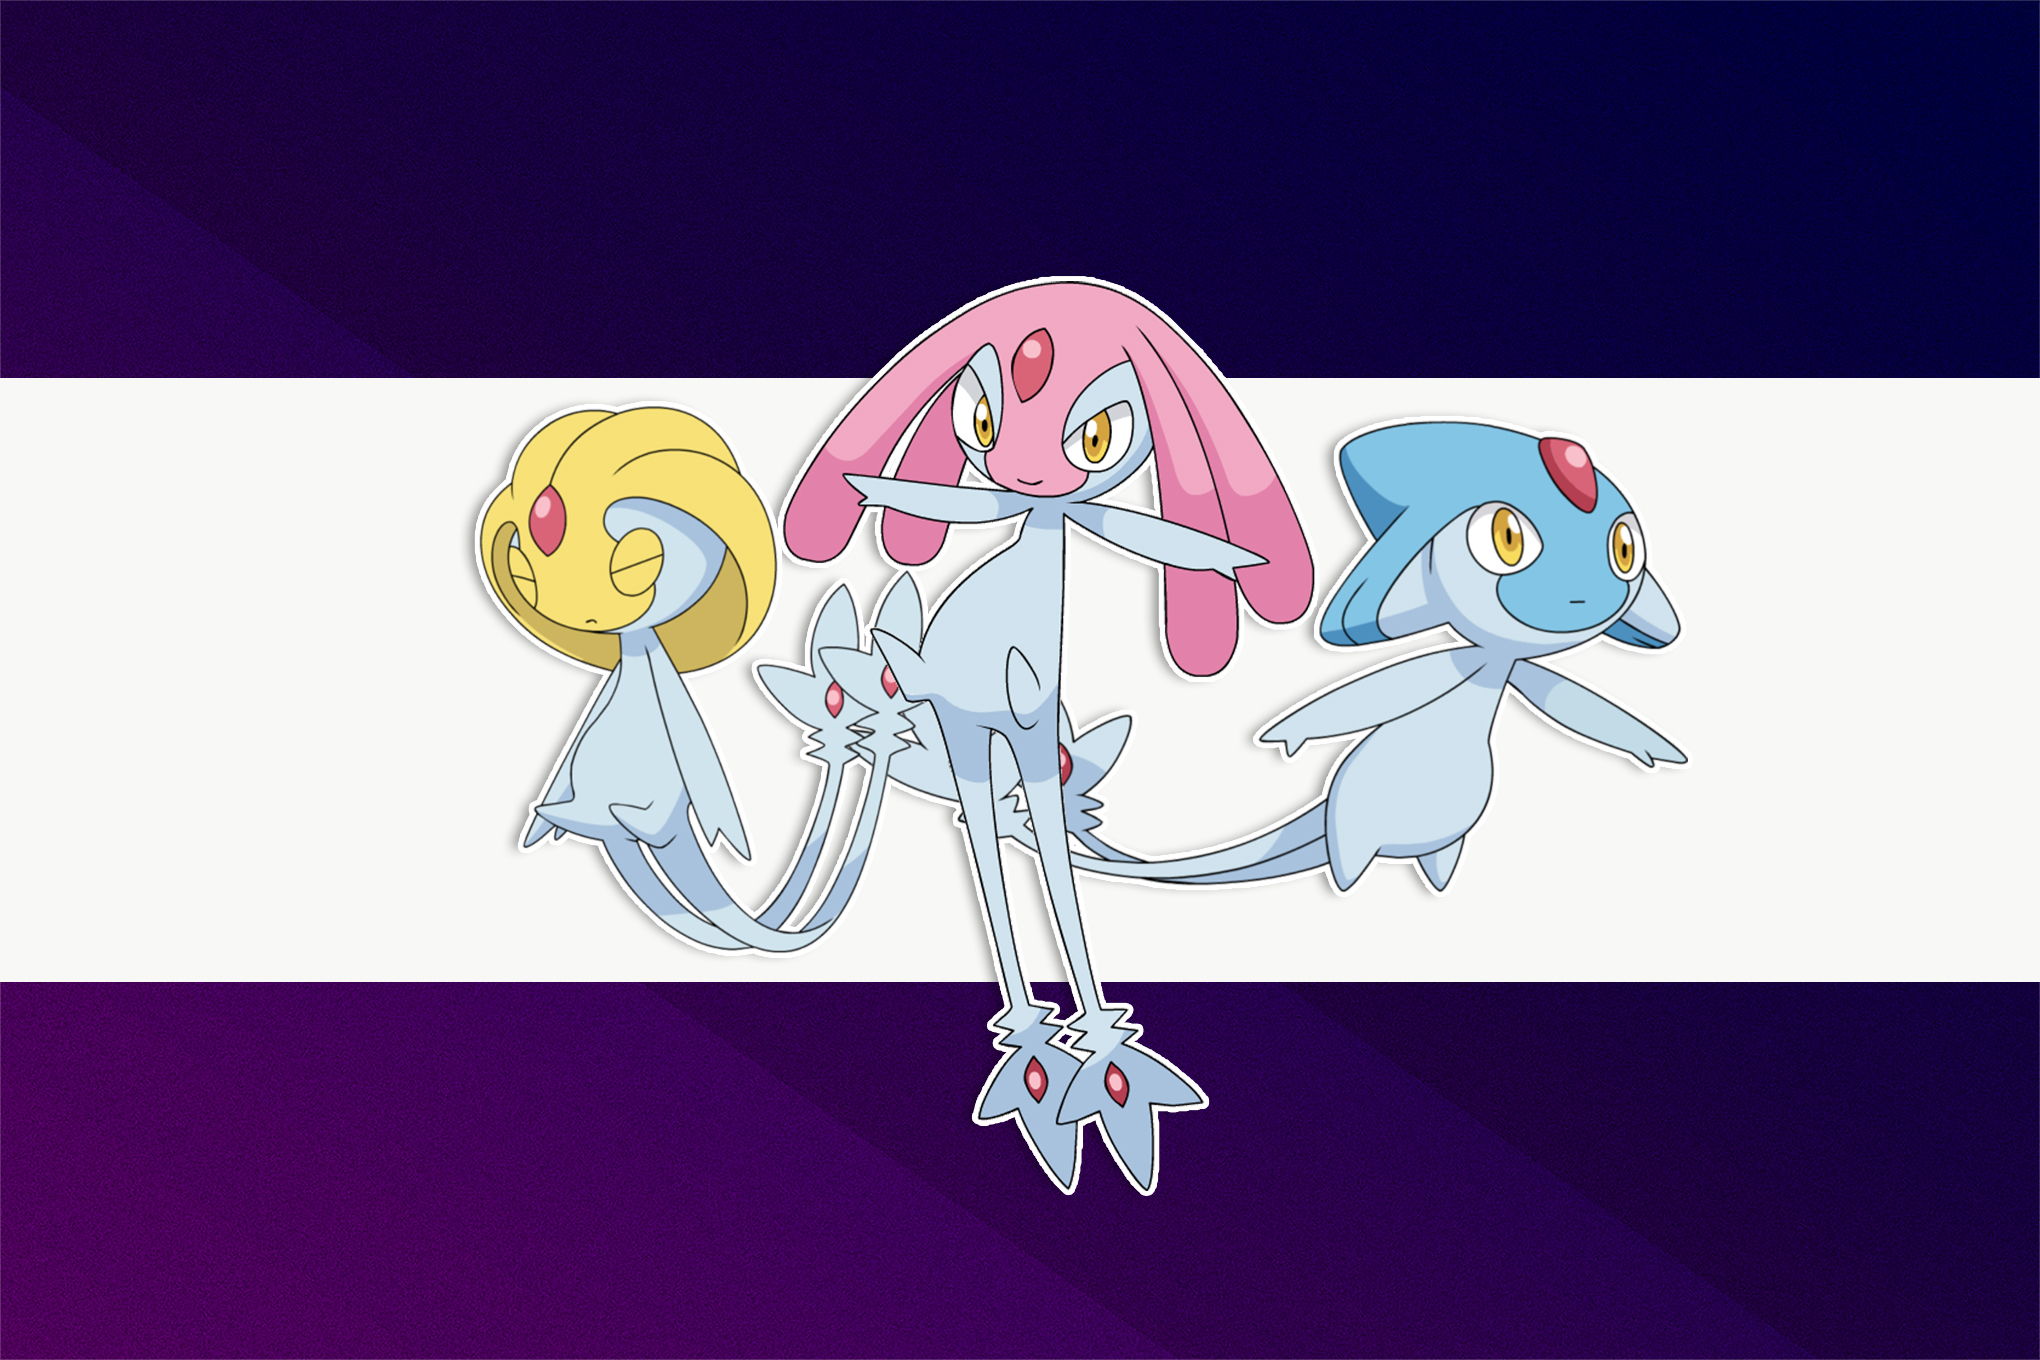 Azelf, Mesprit, and Uxie over a white and purple background